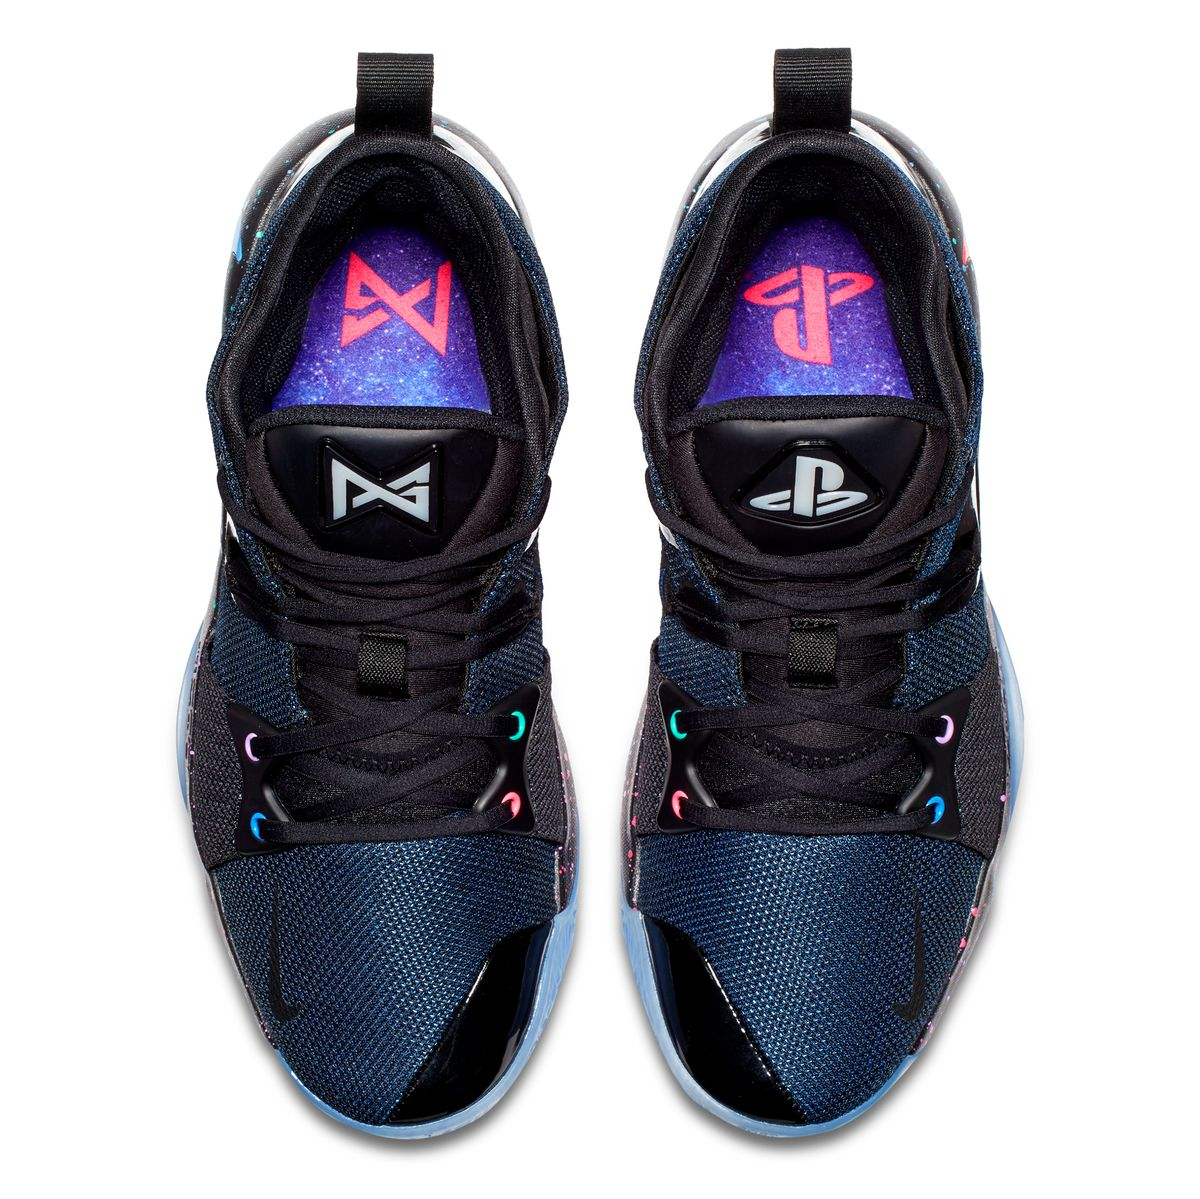 6279129eb55 Nike and PlayStation unite on these limited edition sneakers - The Verge